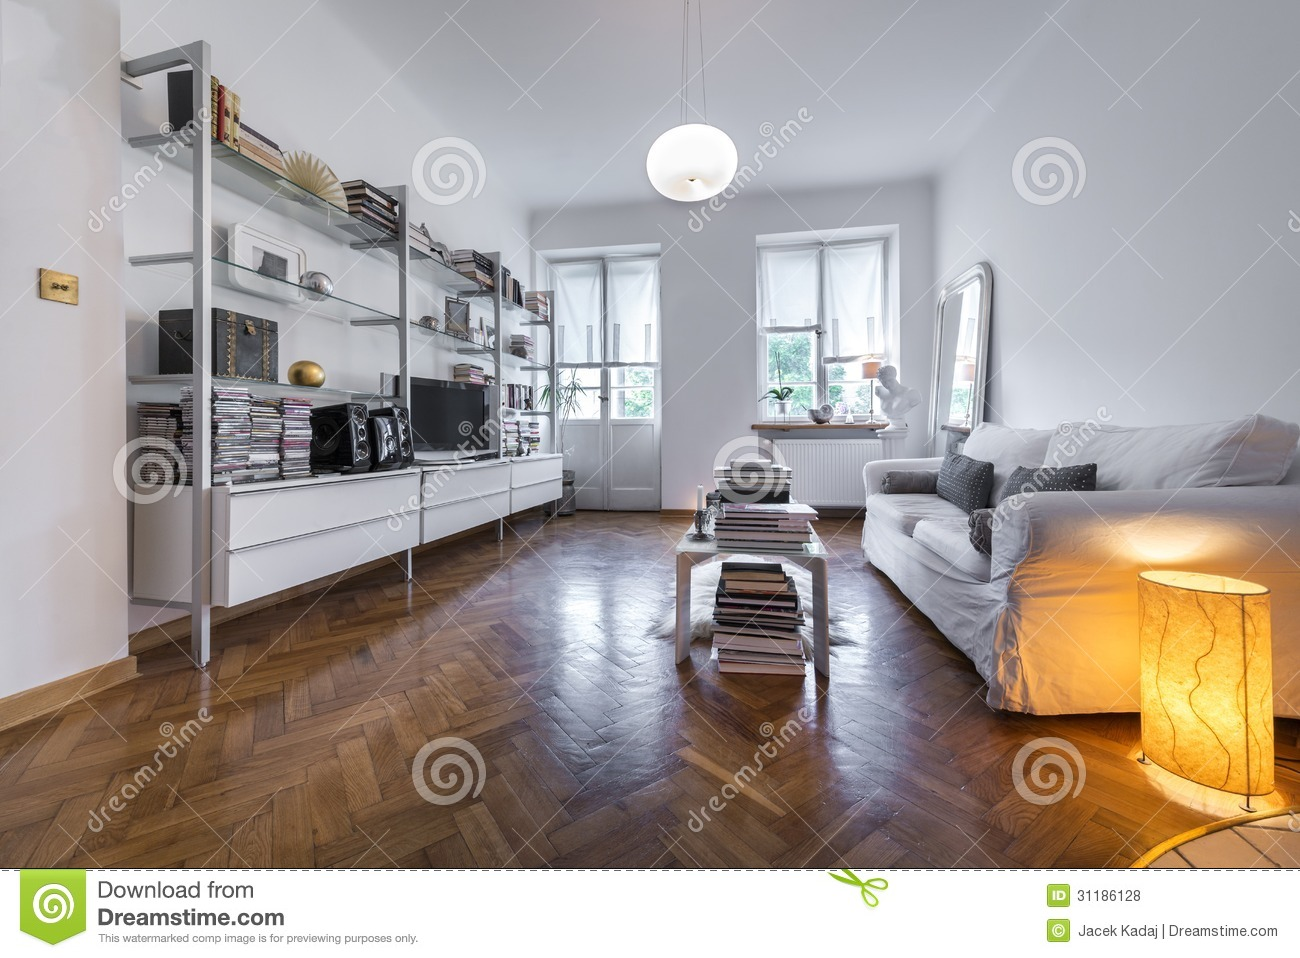 Post modern interior design interior stock photo image Contemporary classic interior design